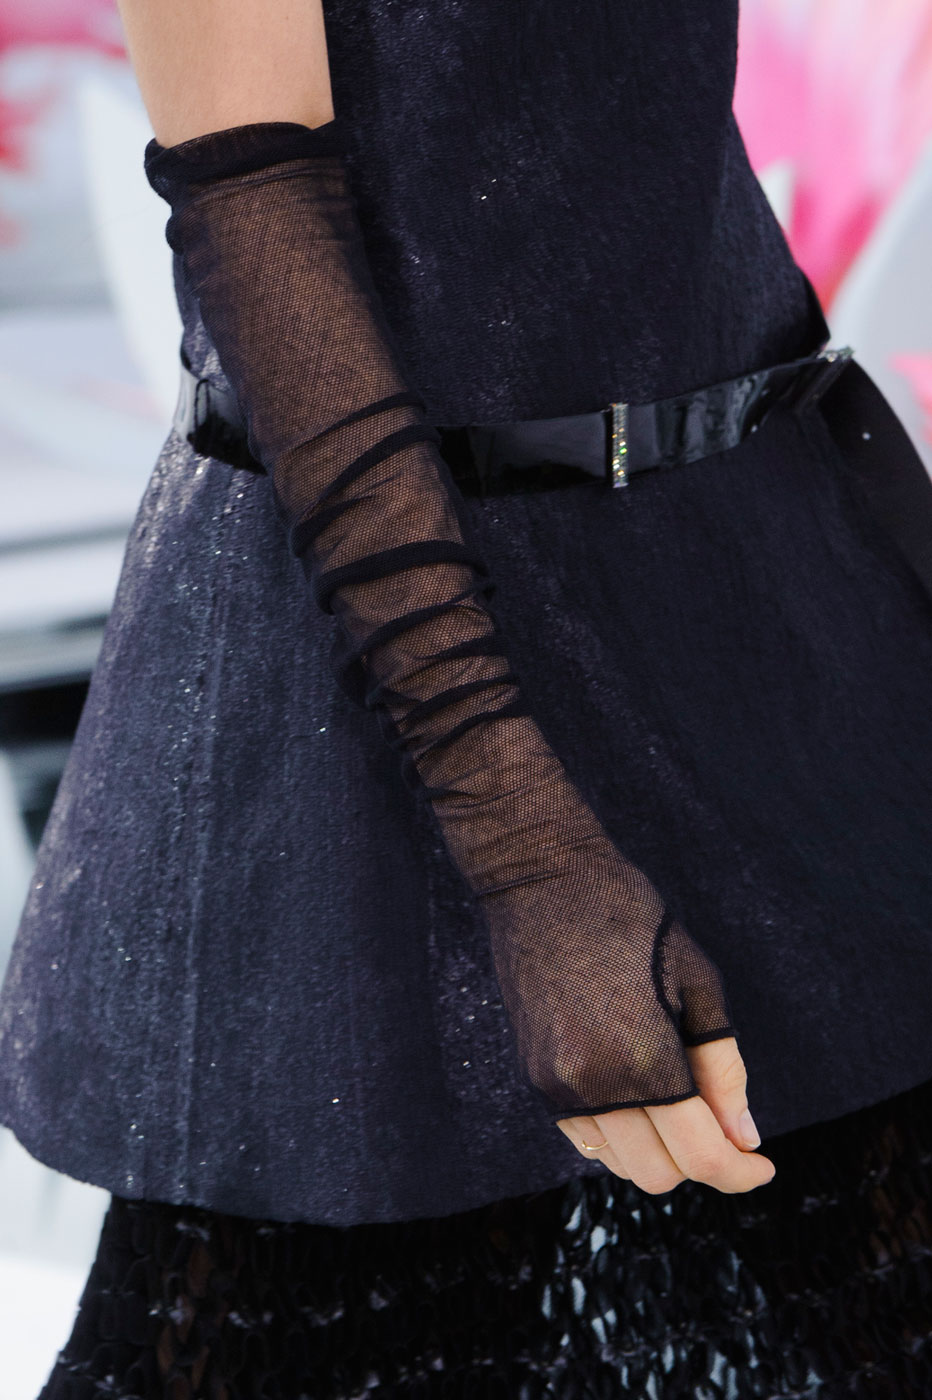 Chanel-fashion-runway-show-close-ups-haute-couture-paris-spring-summer-2015-the-impression-108